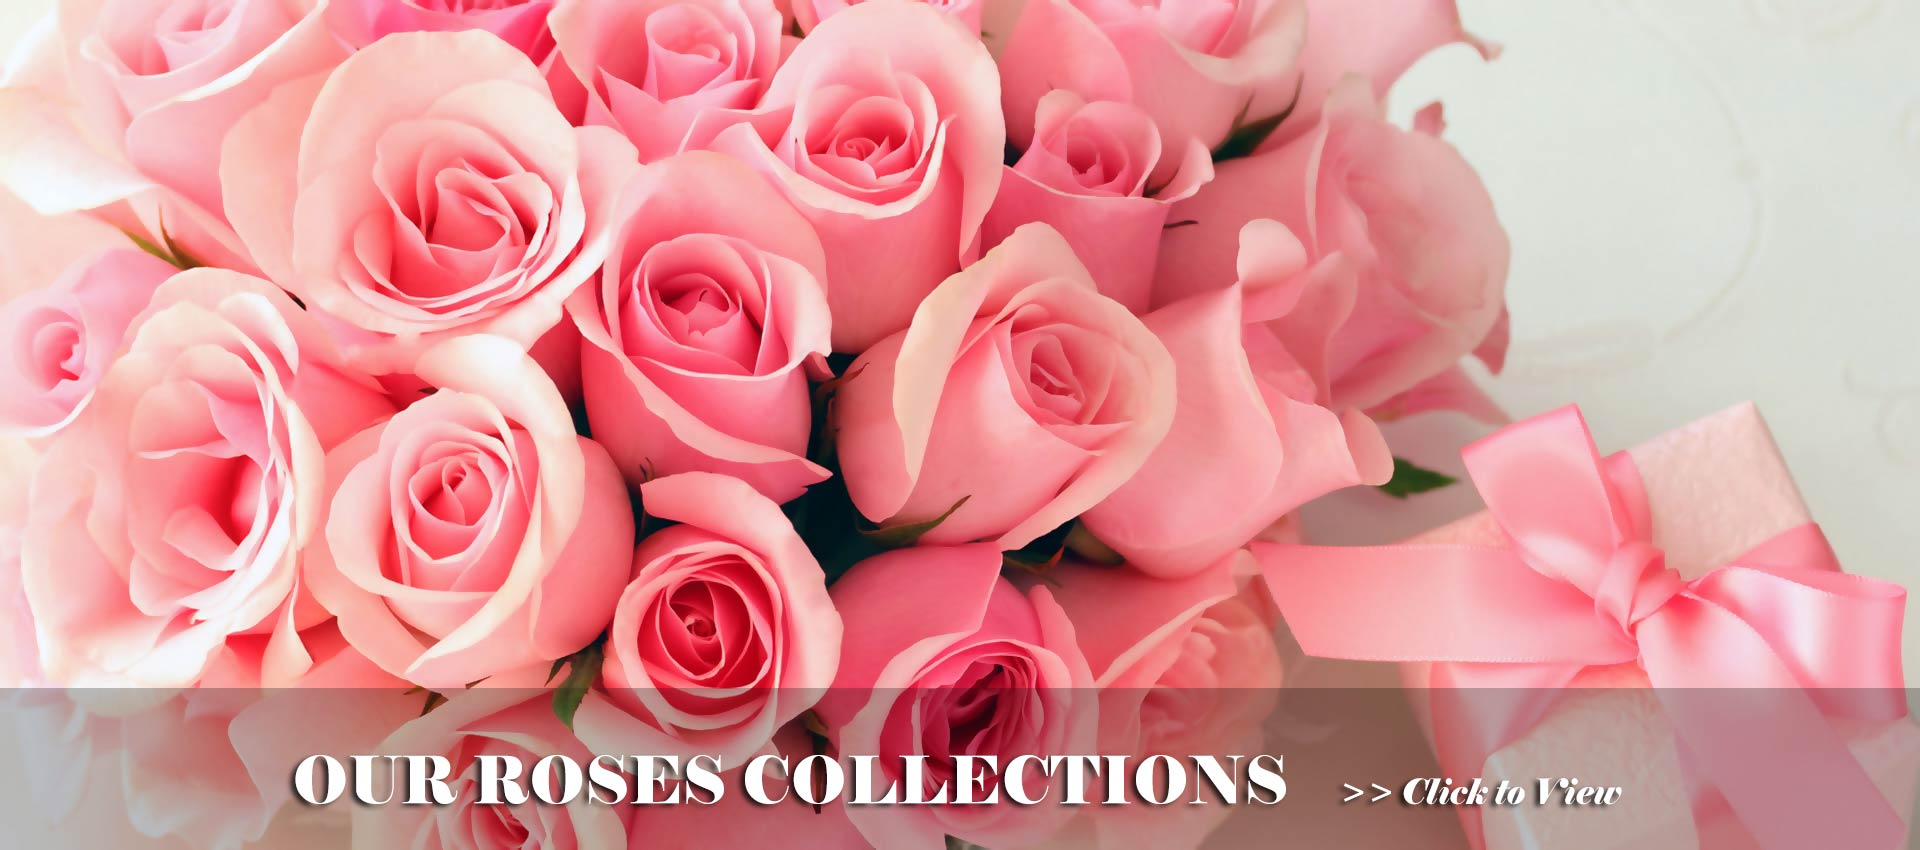 Roses Bouquet | Roses Flower Arrangements | Send Rose Bouquets & Arrangements to Malaysia